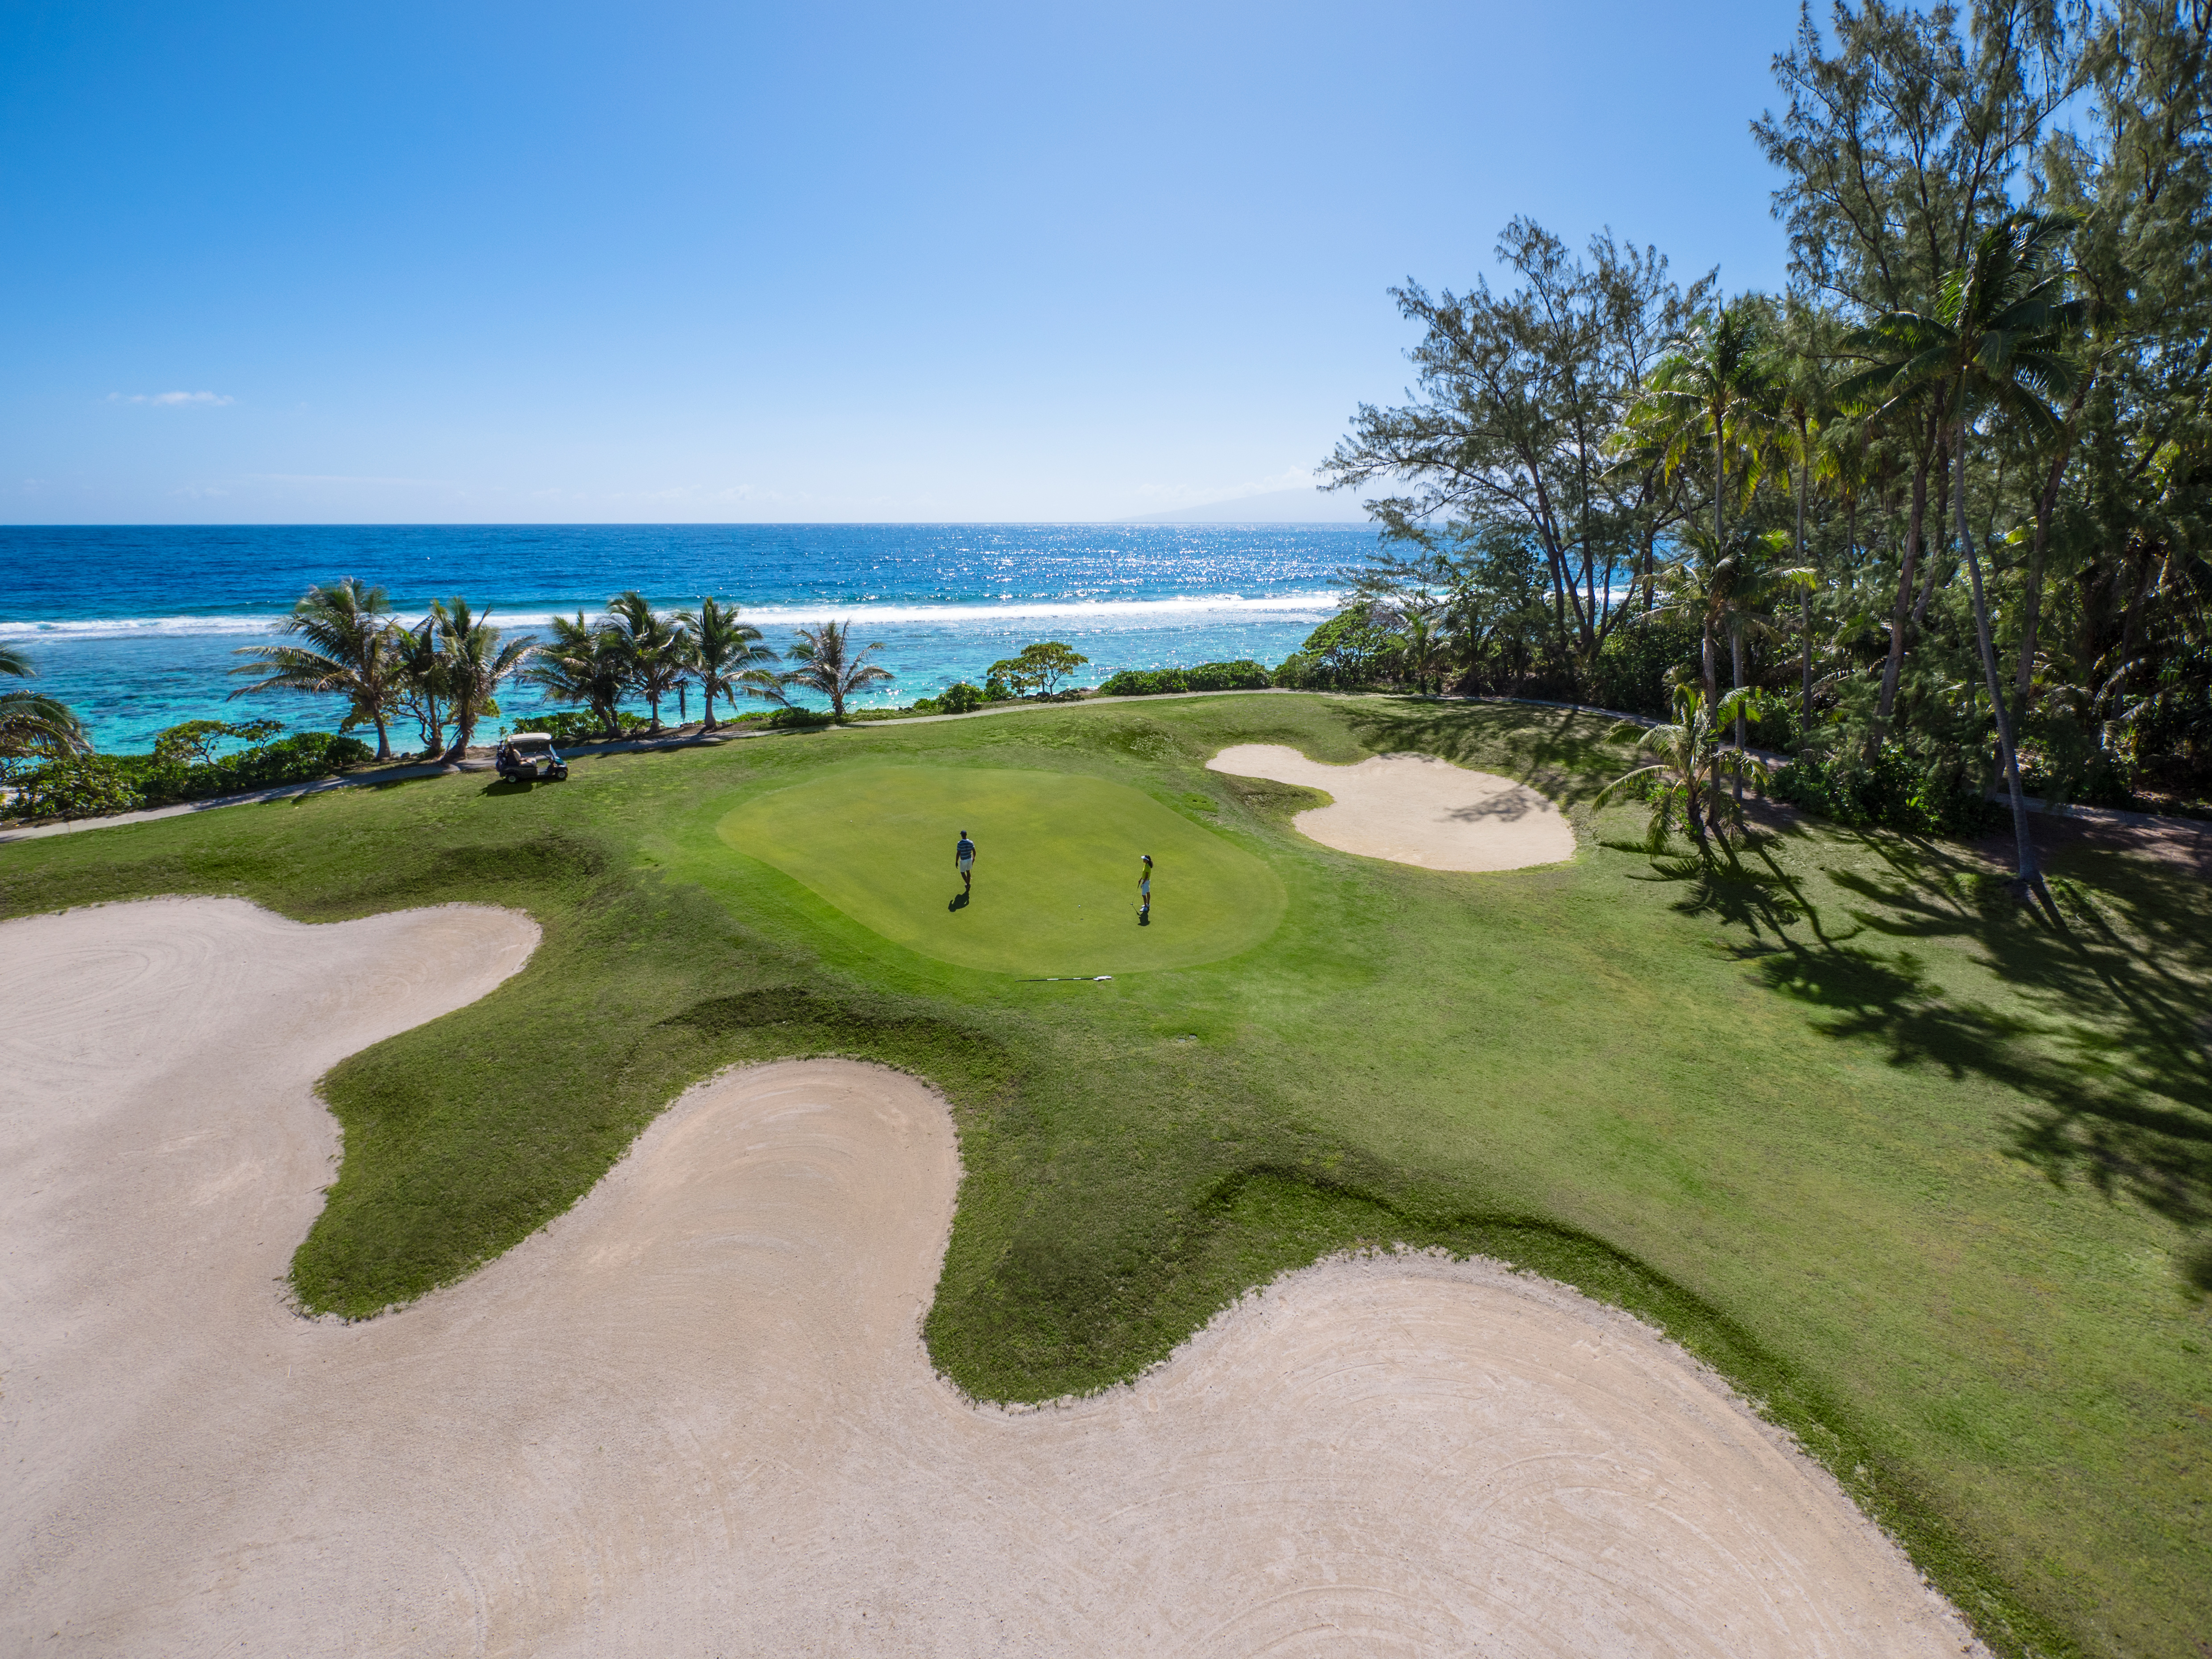 https://tahititourisme.it/wp-content/uploads/2017/08/ACTIVITES-TERRESTRES-Moorea-Green-Pearl-Golf-1.jpg